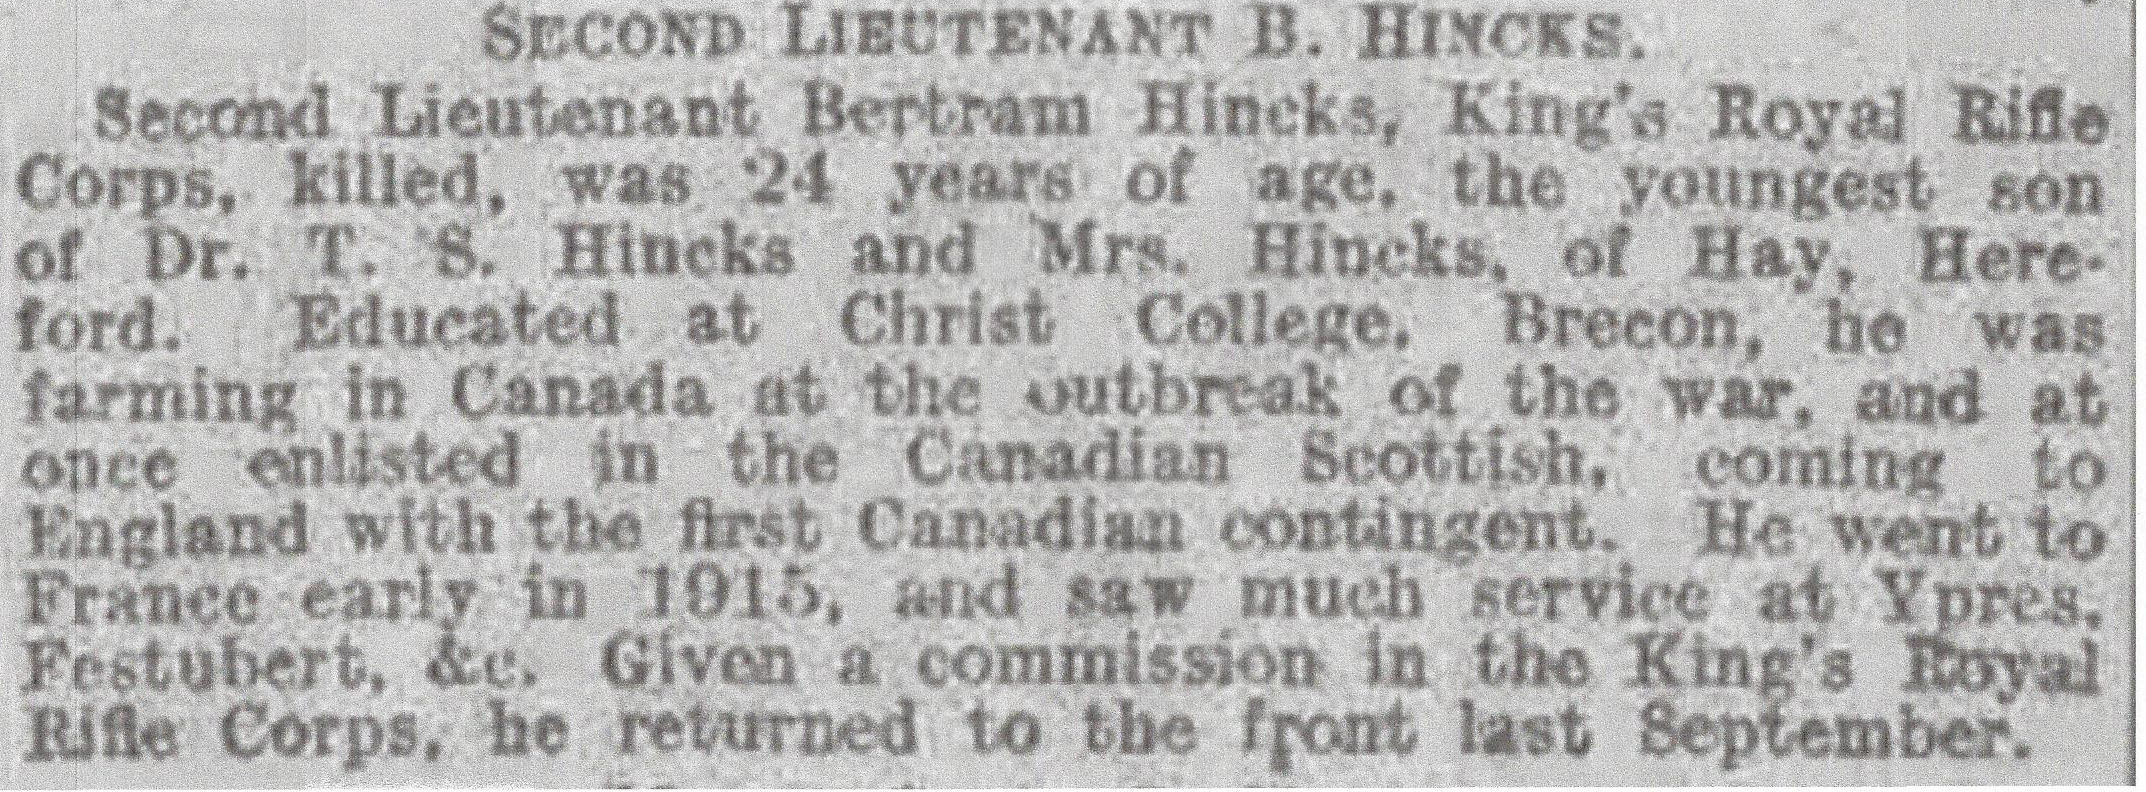 Newspaper Clipping– Newspaper clipping from Daily Telegraph of December 30, 1916. Image taken from web address of http://www.telegraph.co.uk/news/ww1-archive/12214039/Daily-Telegraph-December-30-1916.html